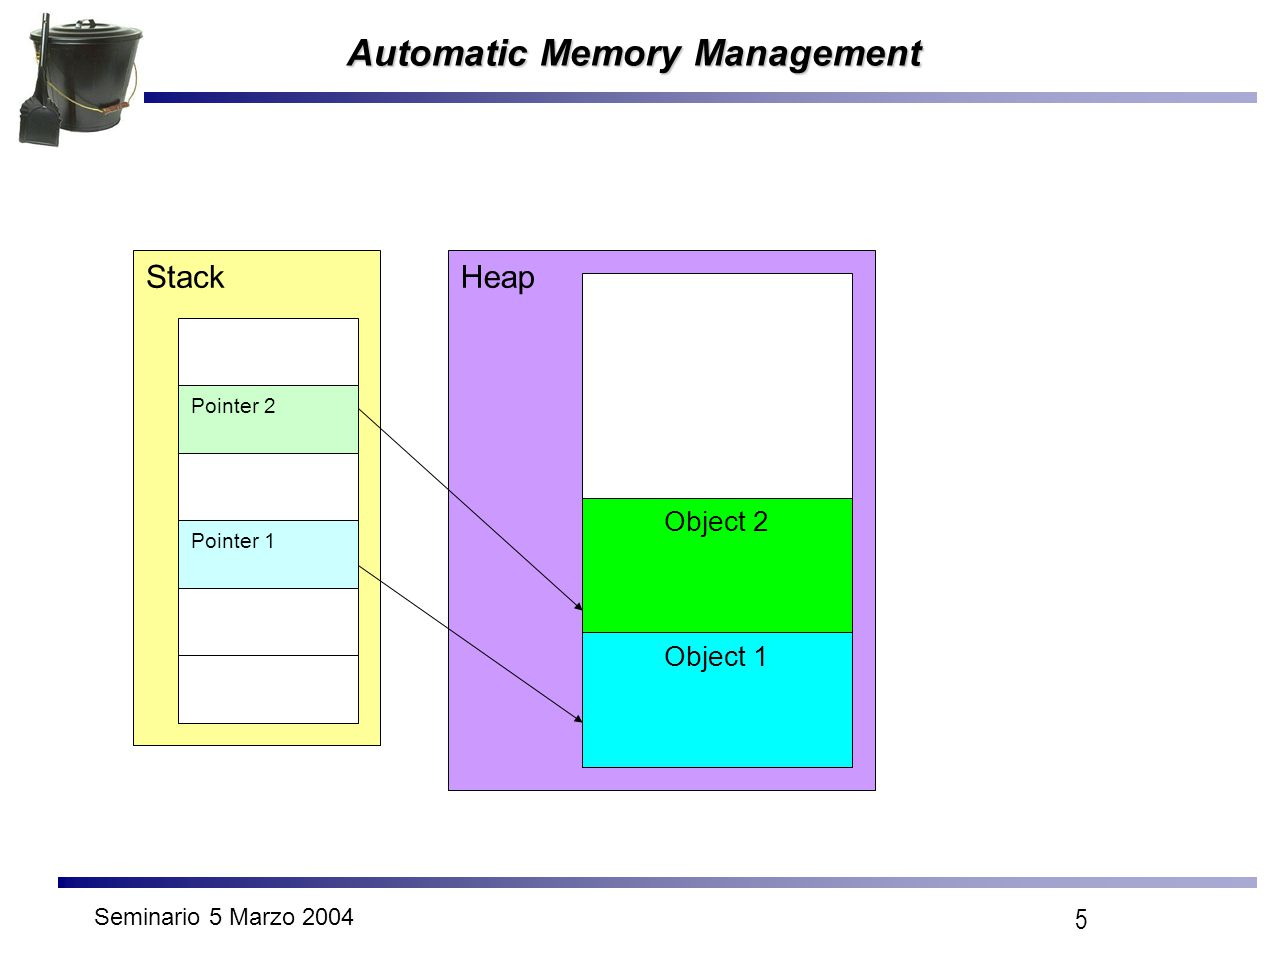 Seminario 5 Marzo 2004 5 Automatic Memory Management Stack Pointer 2 Pointer 1 Heap Object 2 Object 1